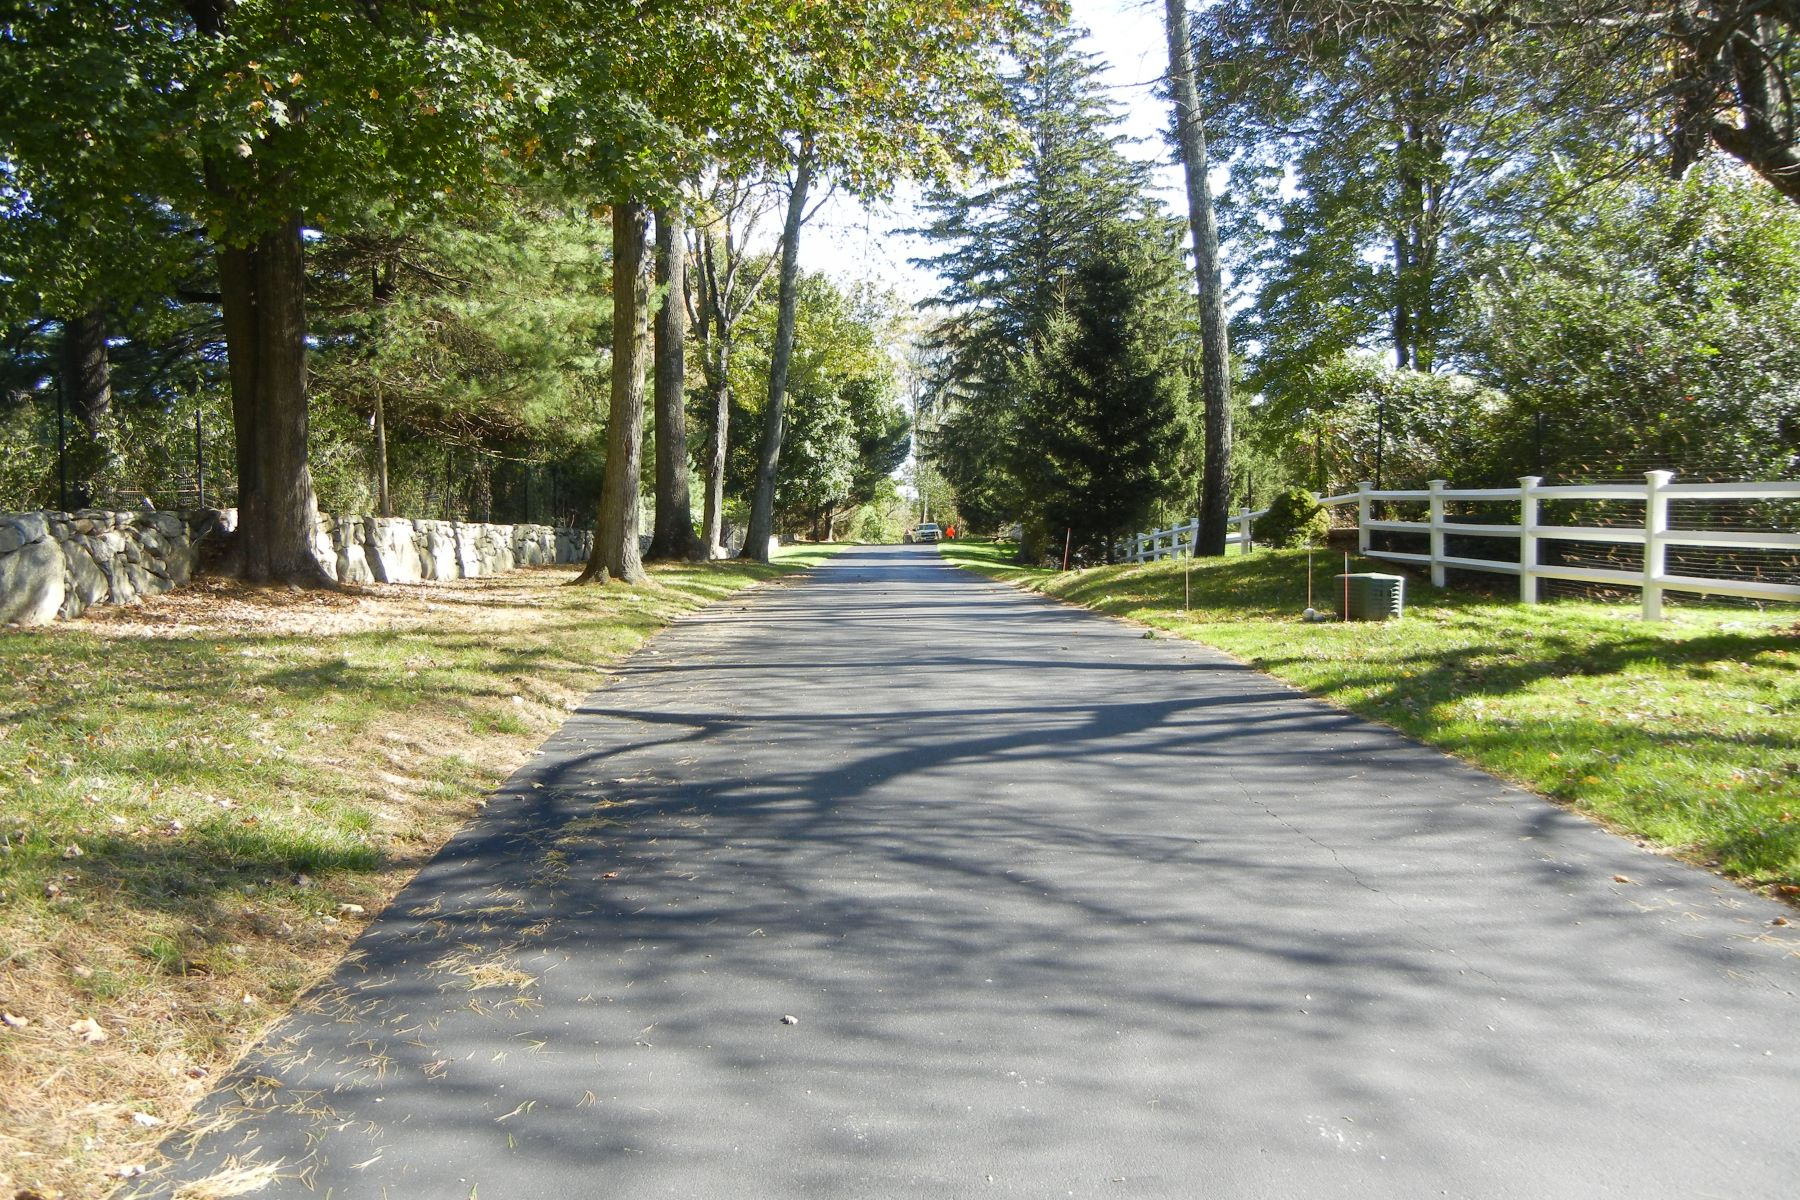 Land for Sale at 729 Smith Ridge Road 729 Smith Ridge Road New Canaan, Connecticut 06840 United States